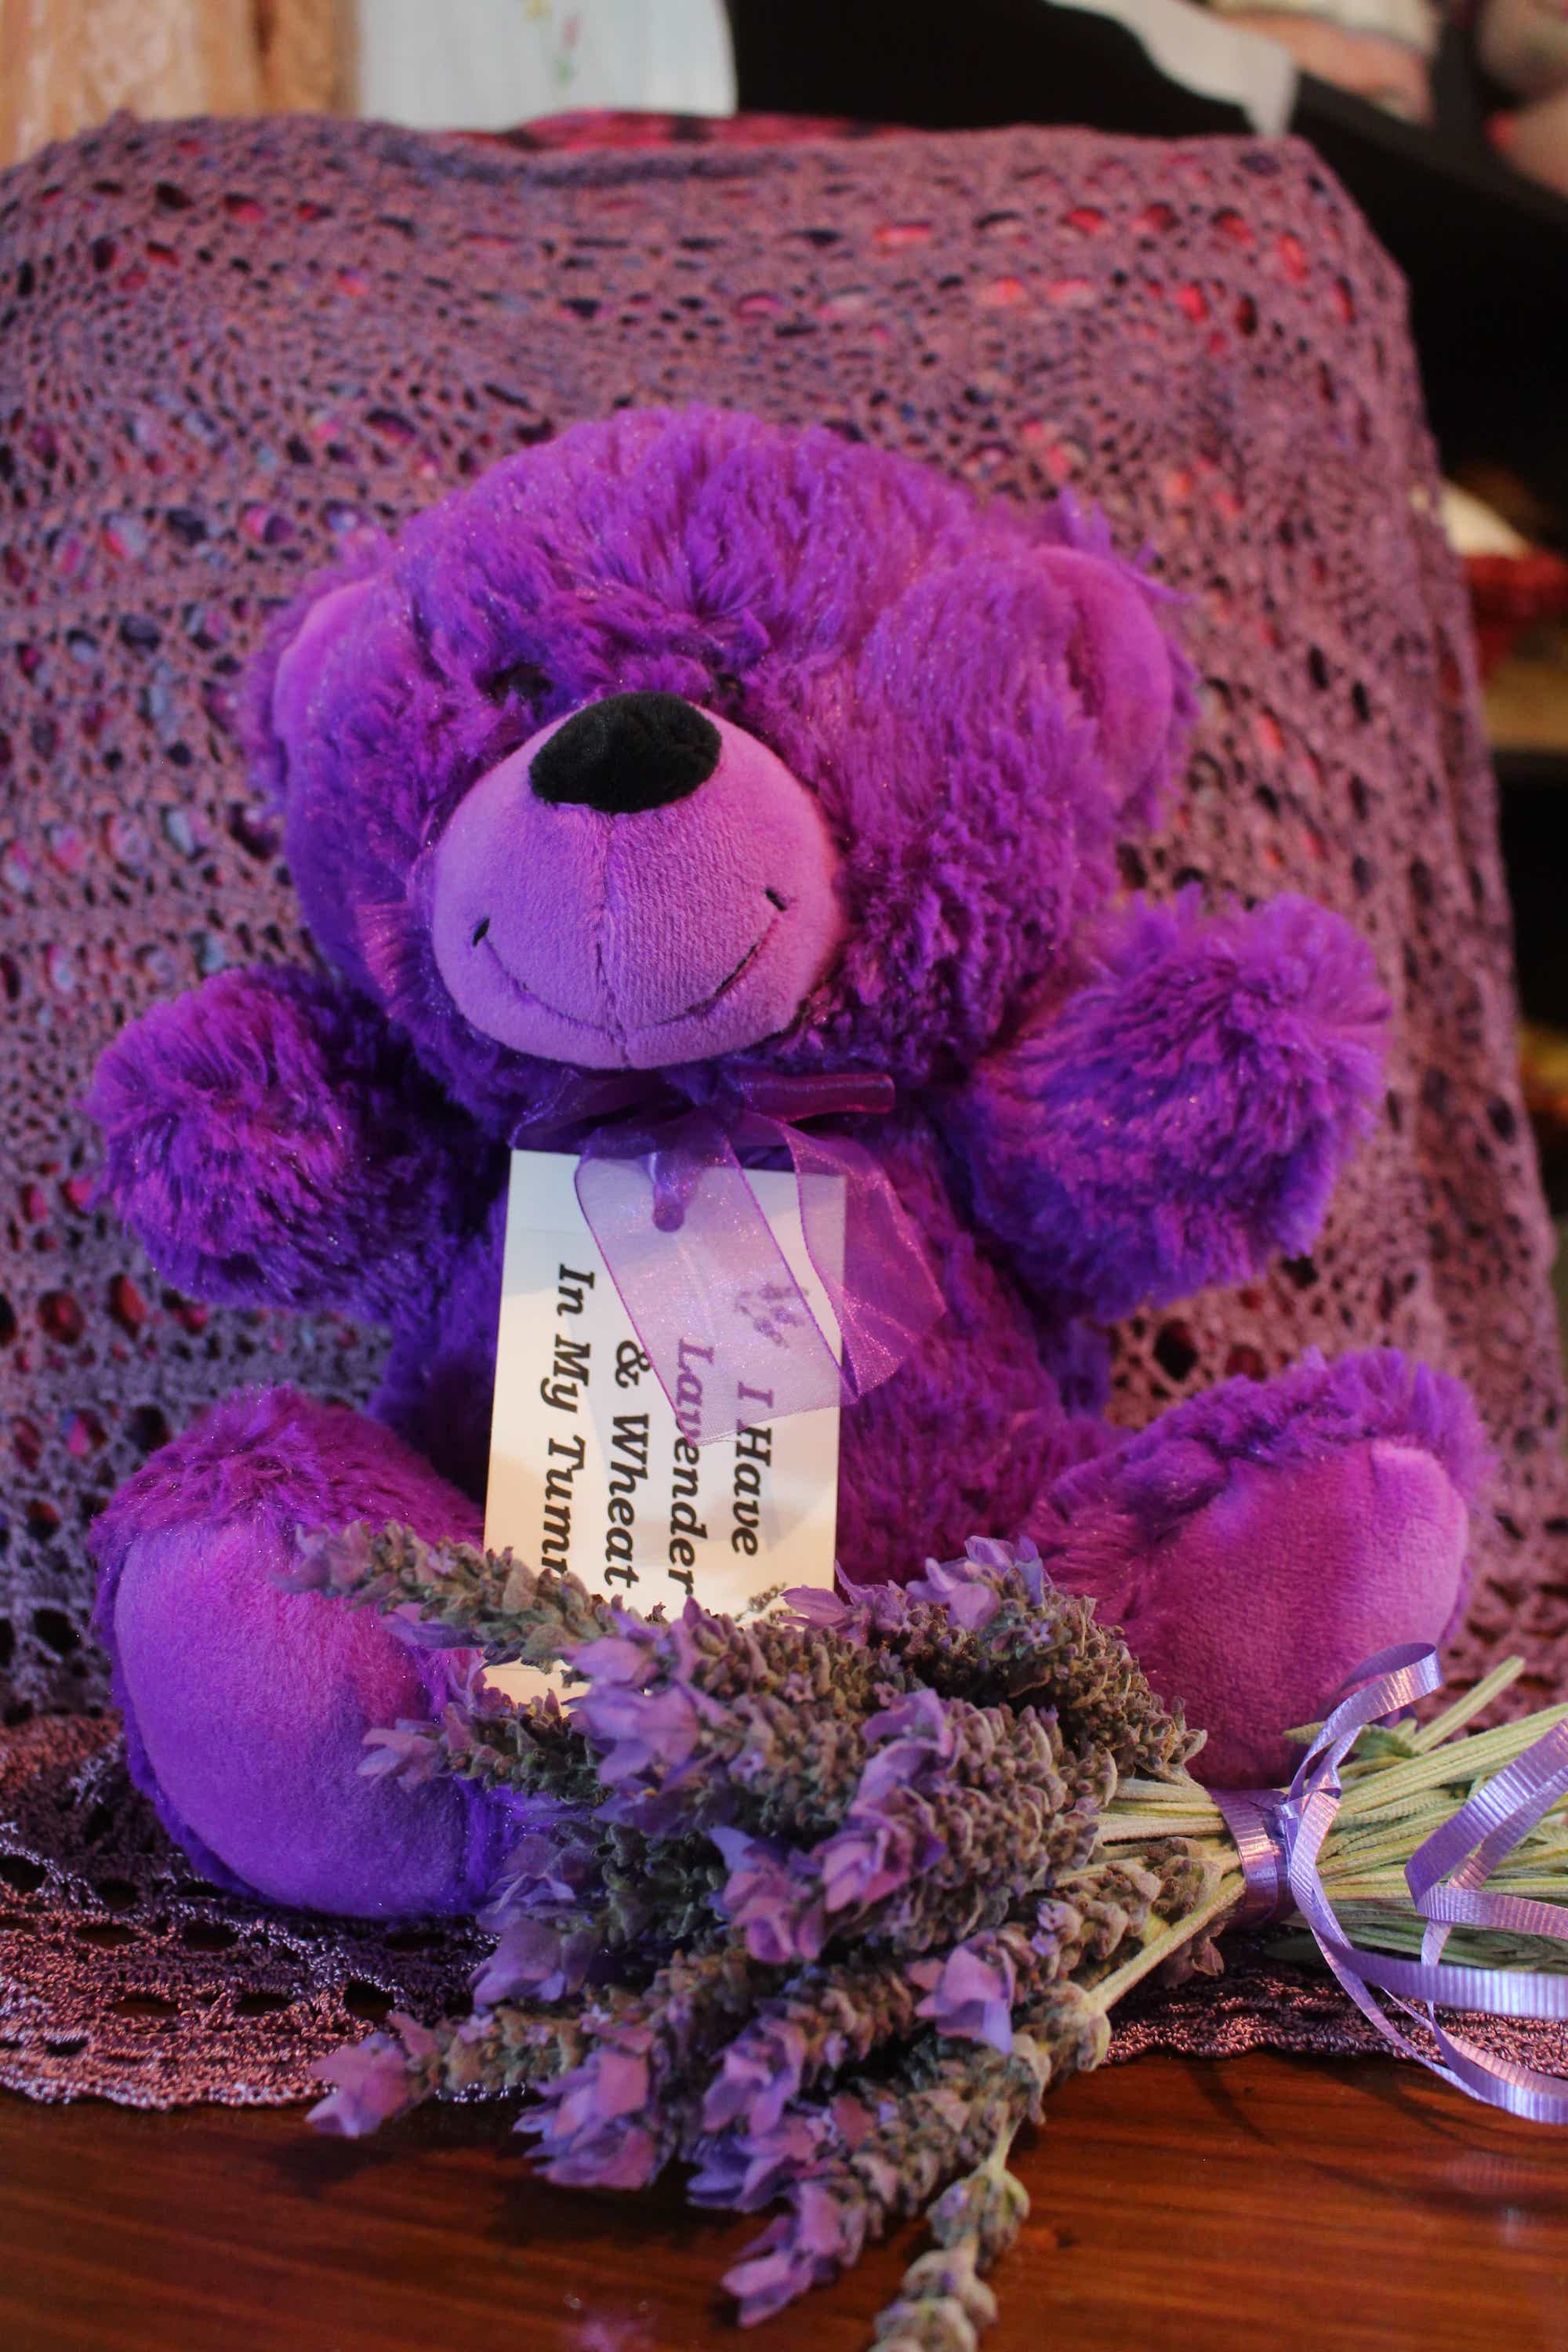 Photograph of Lavender Teddy product